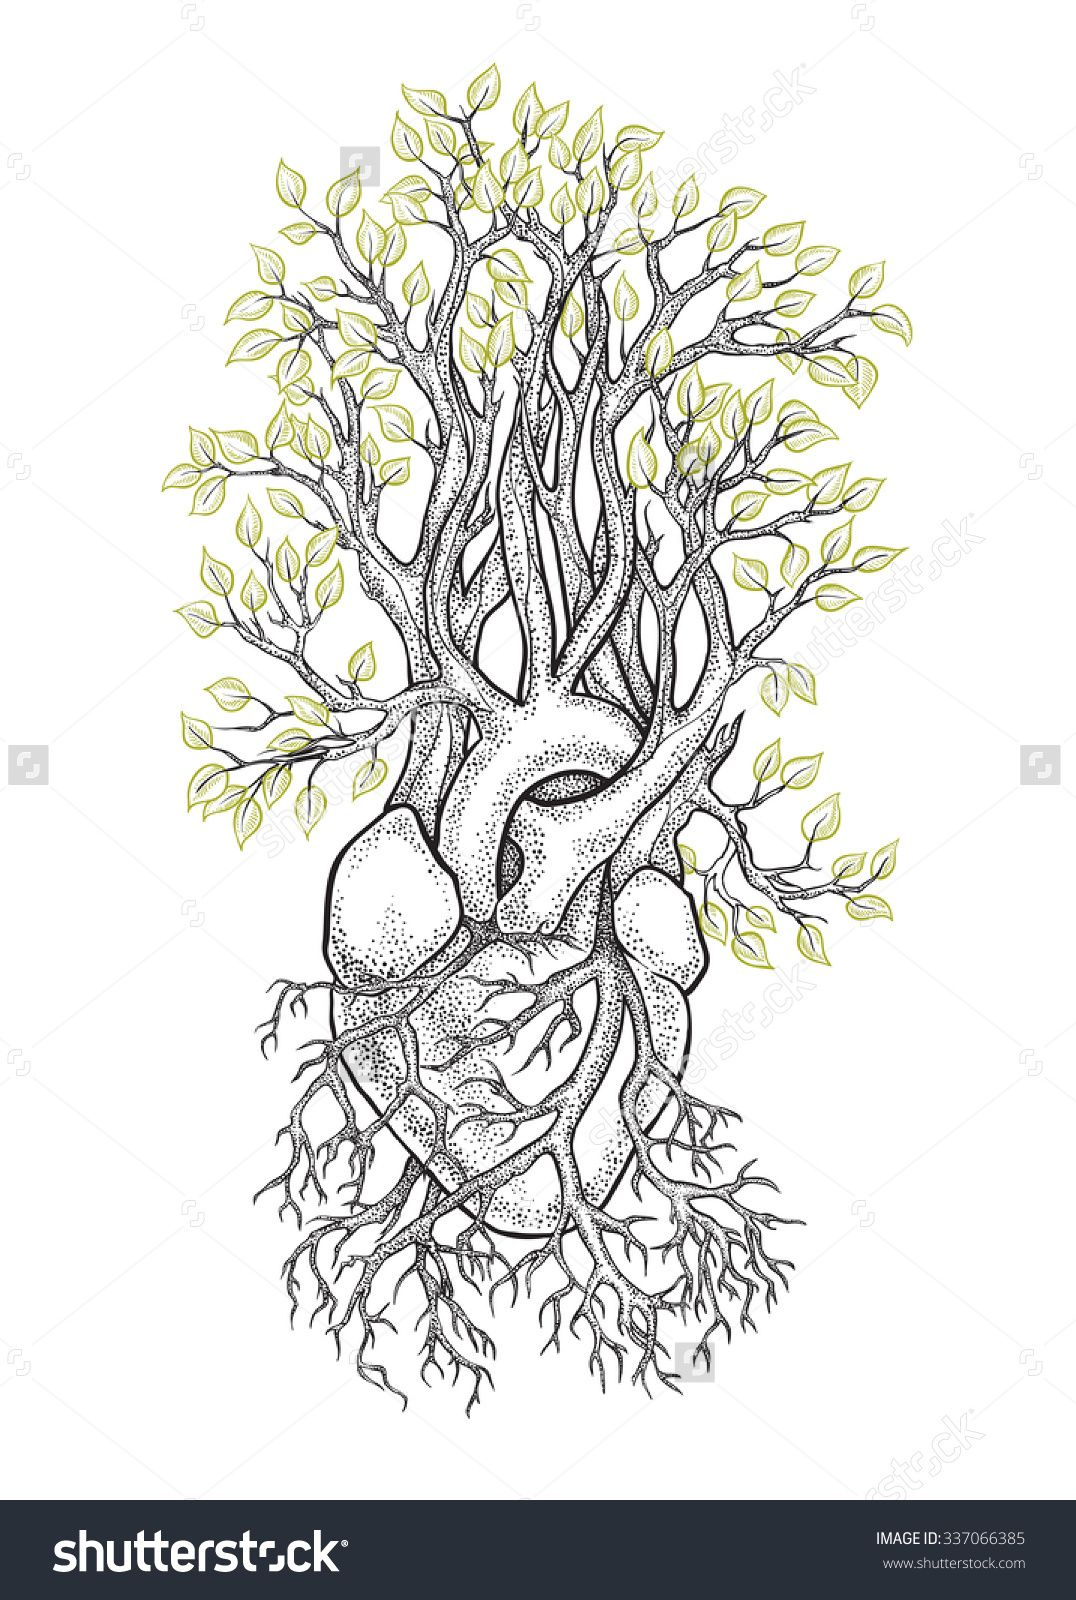 picture black and white library Veins drawing tree. Human anatomical heart with